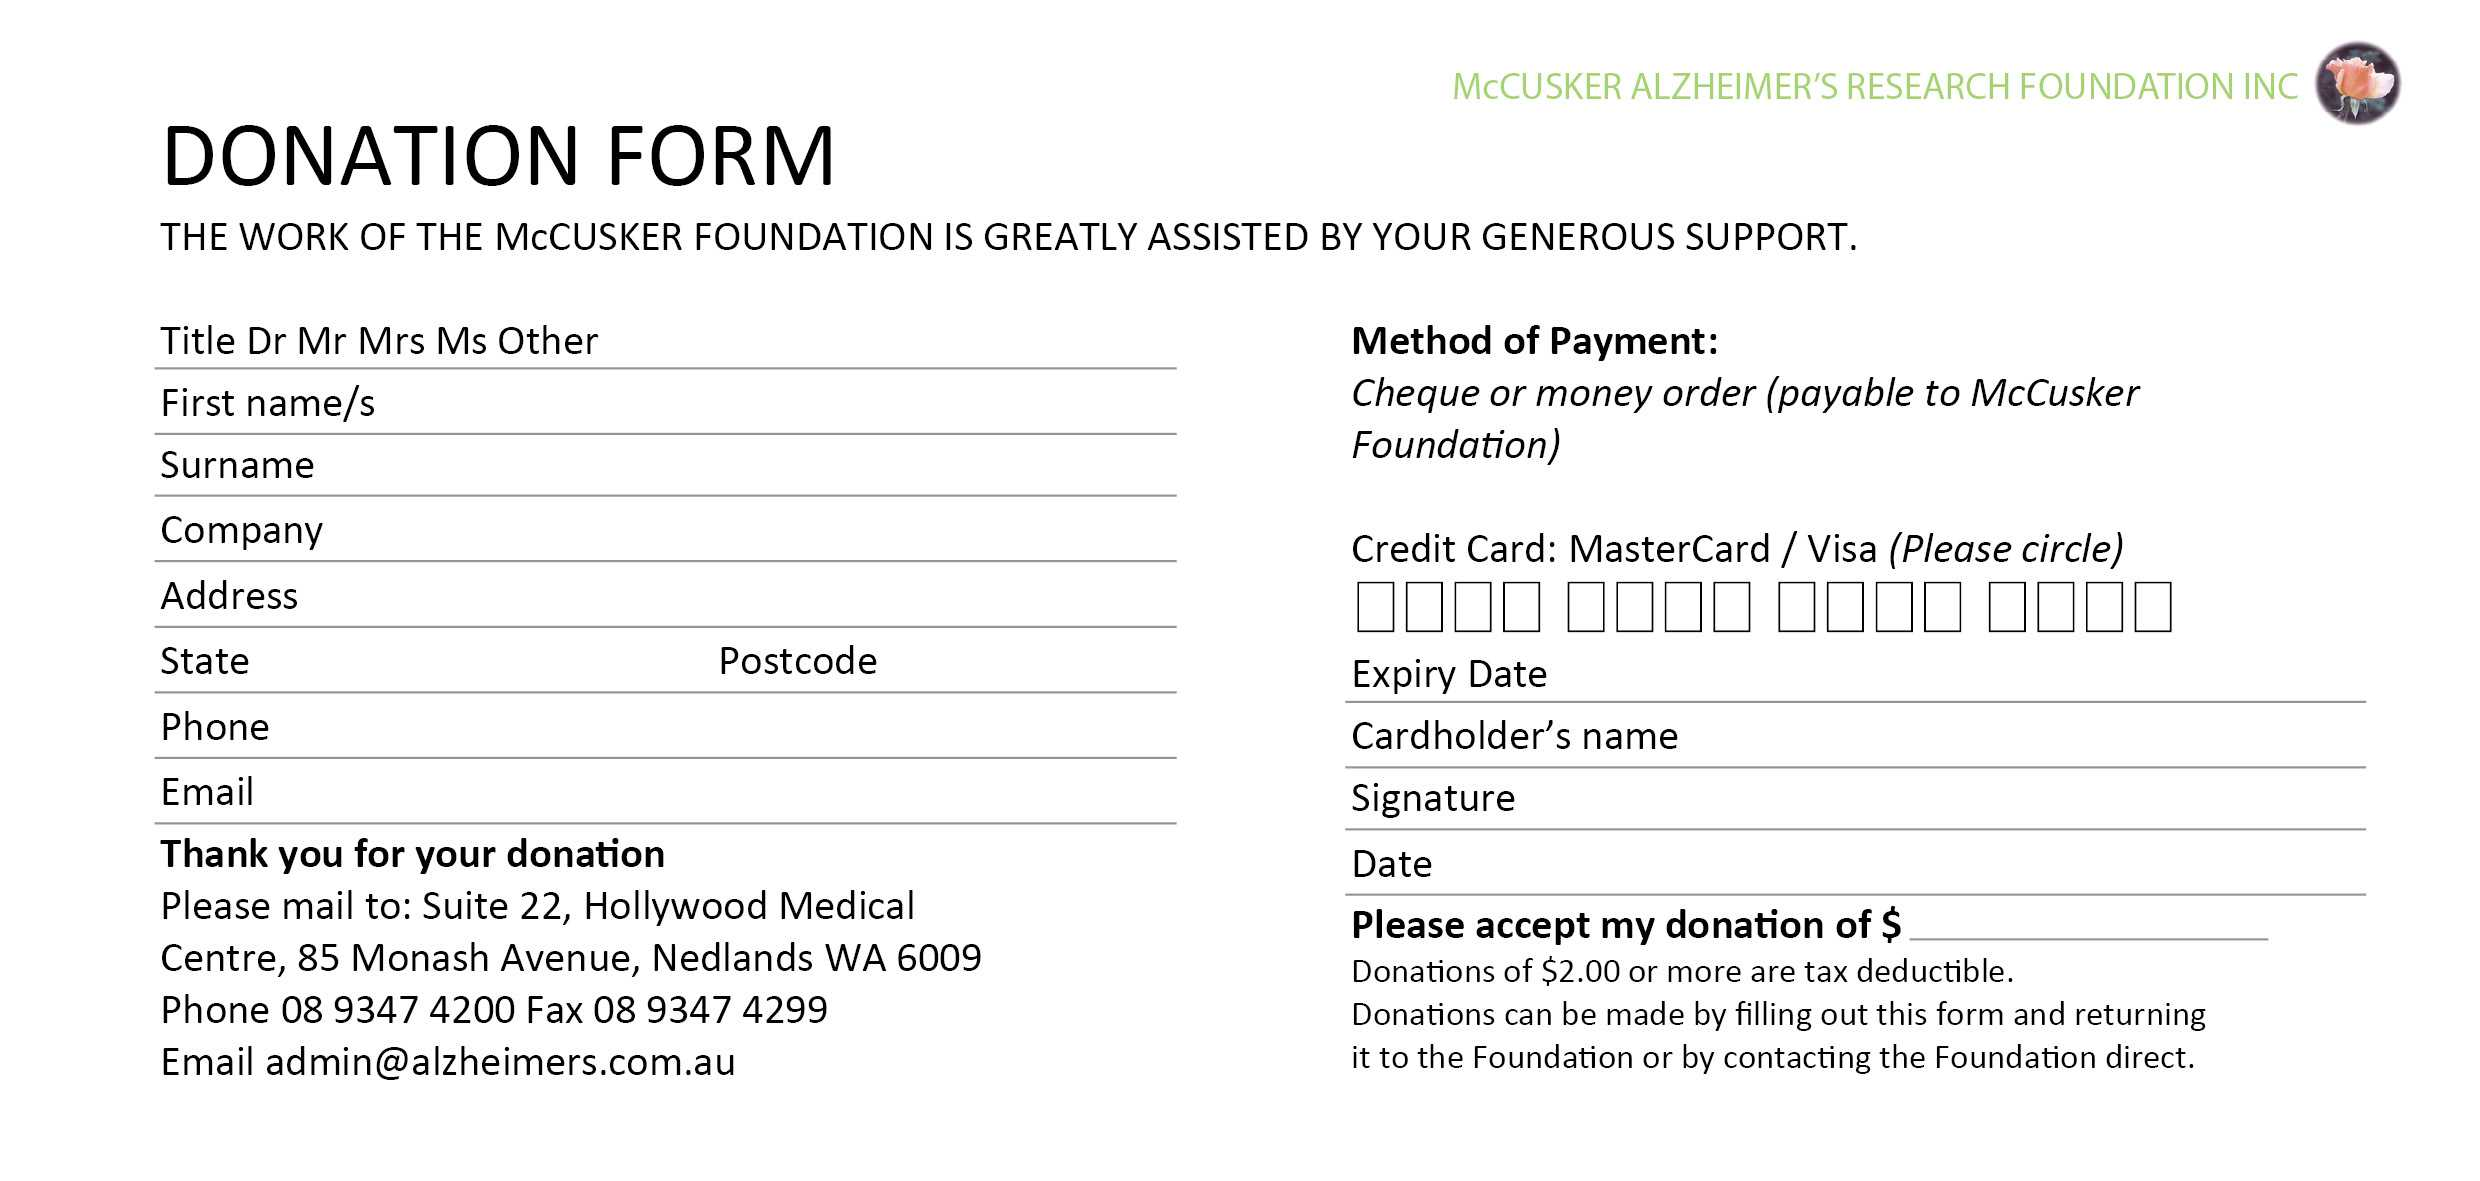 037 Fundraising Request Form Template Card Donation 458179 For Donation Card Template Free